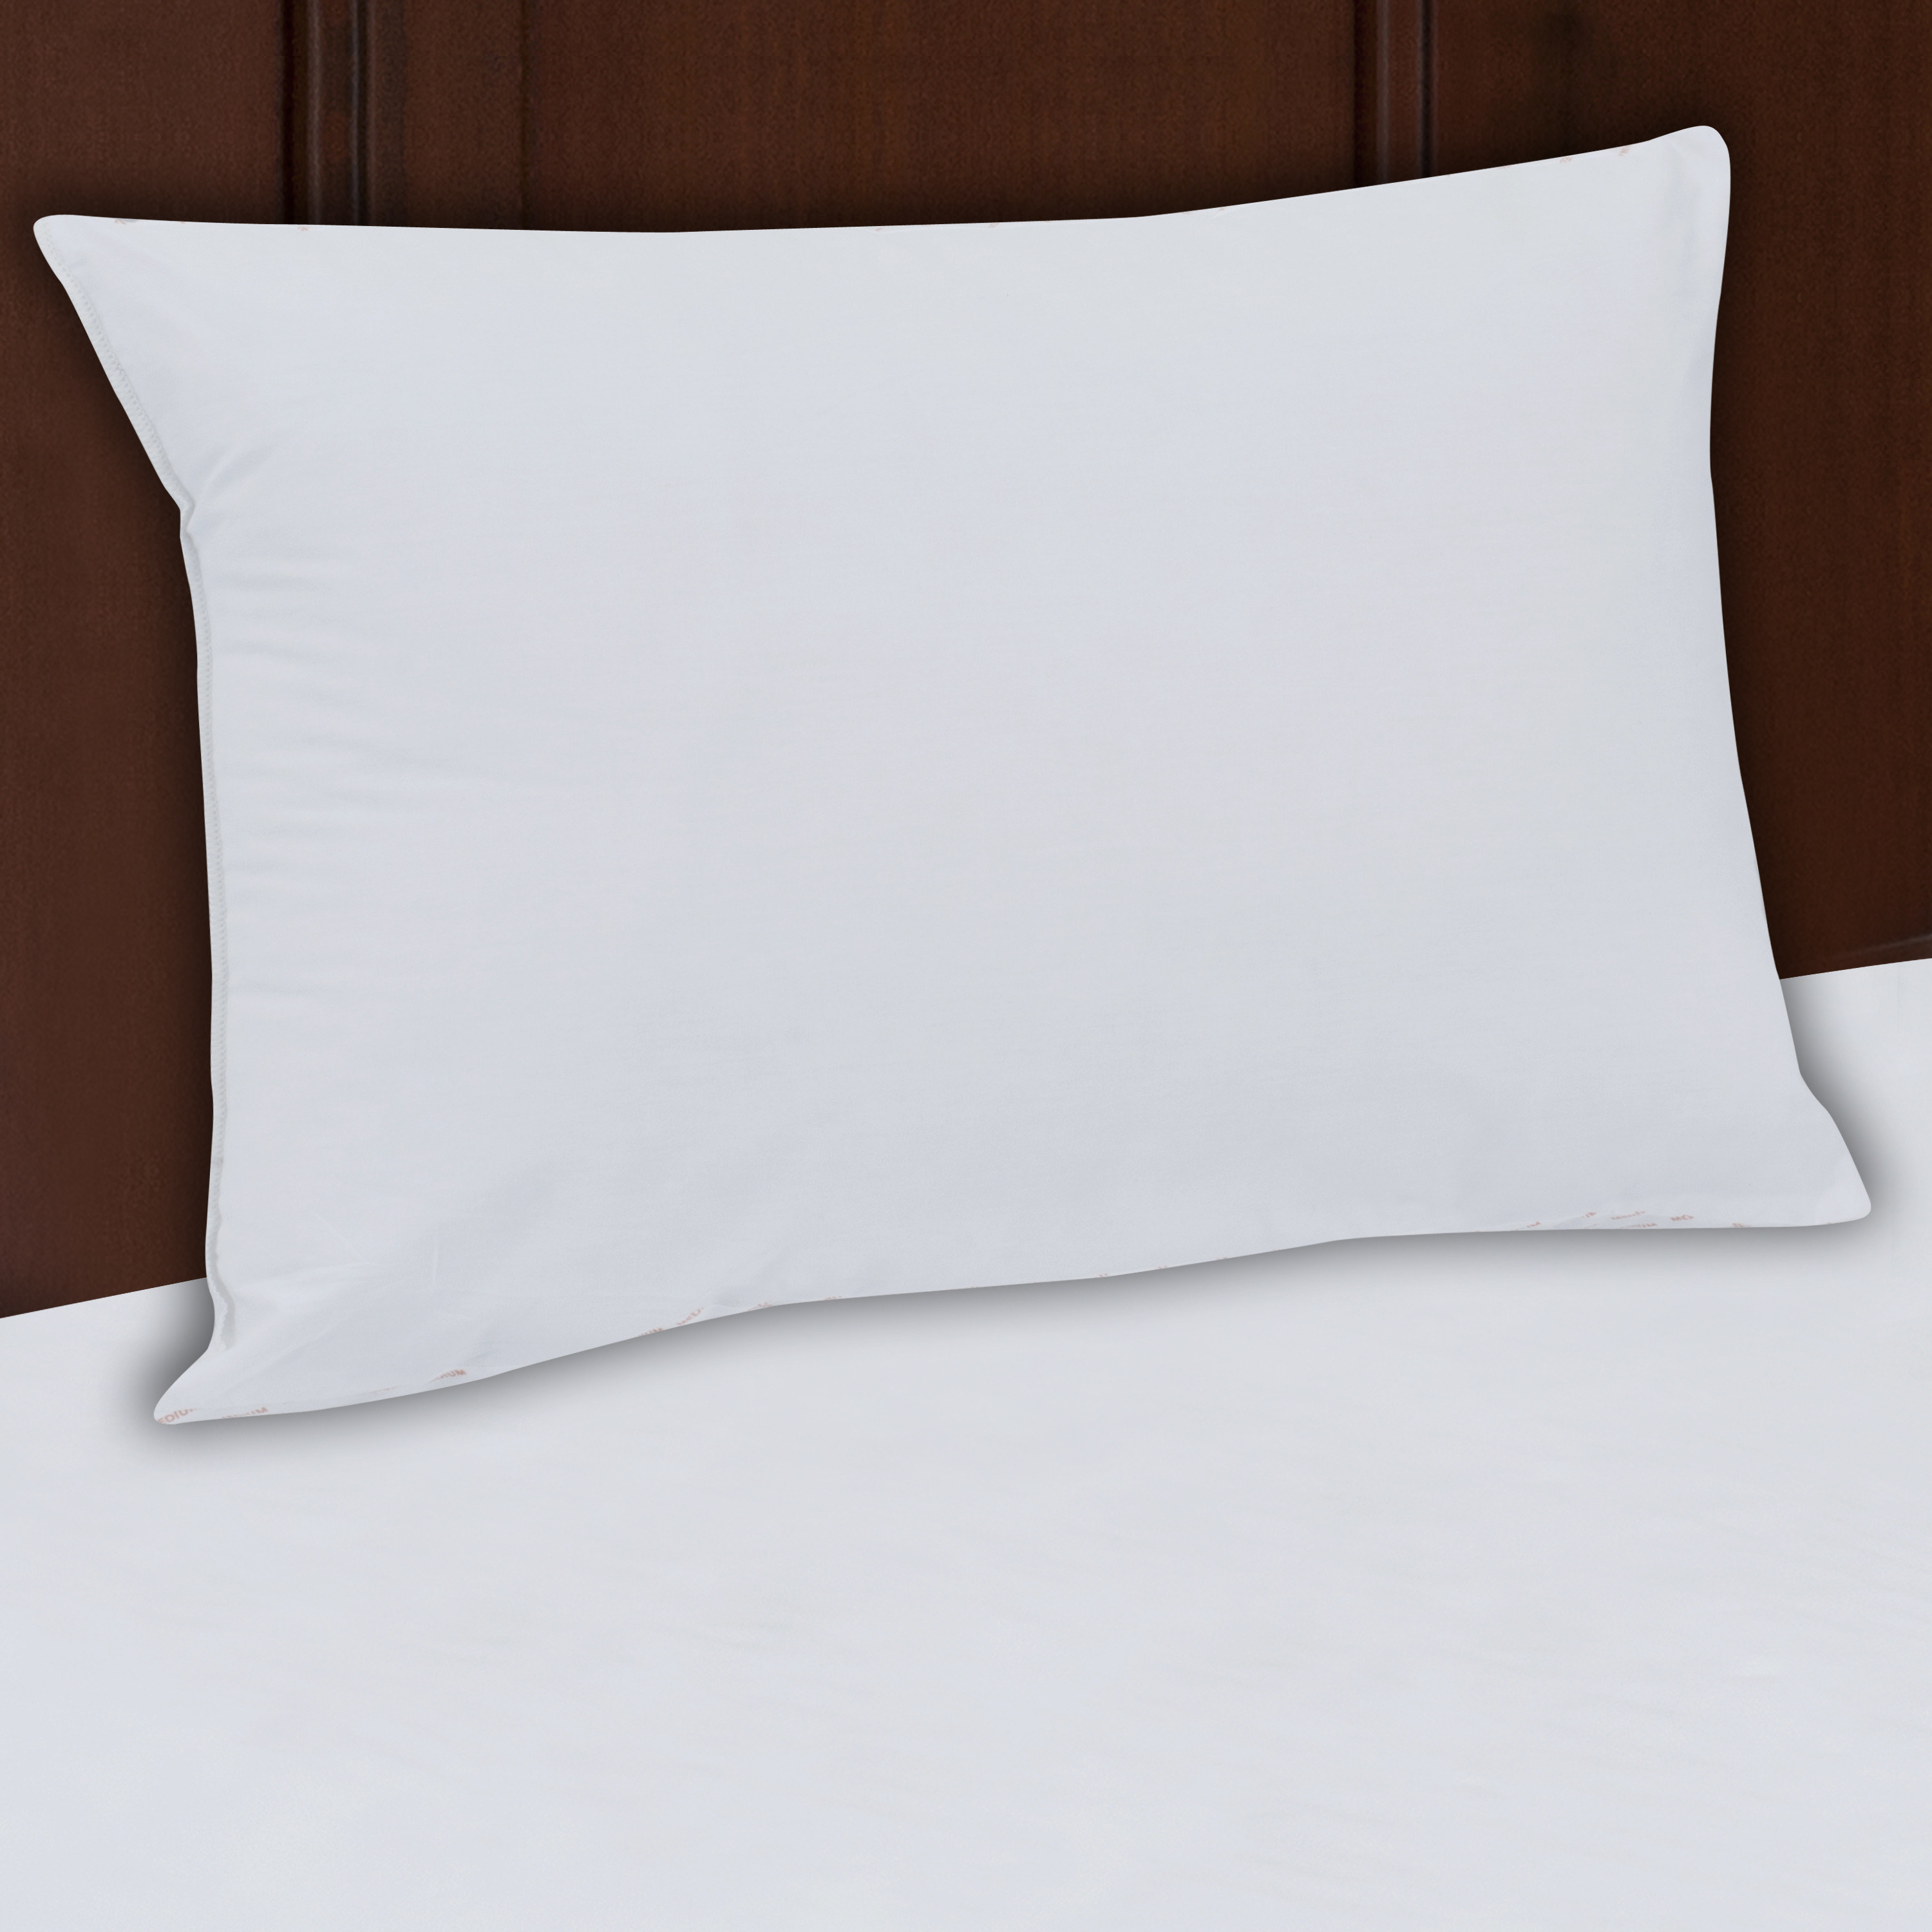 The white pillow on bed